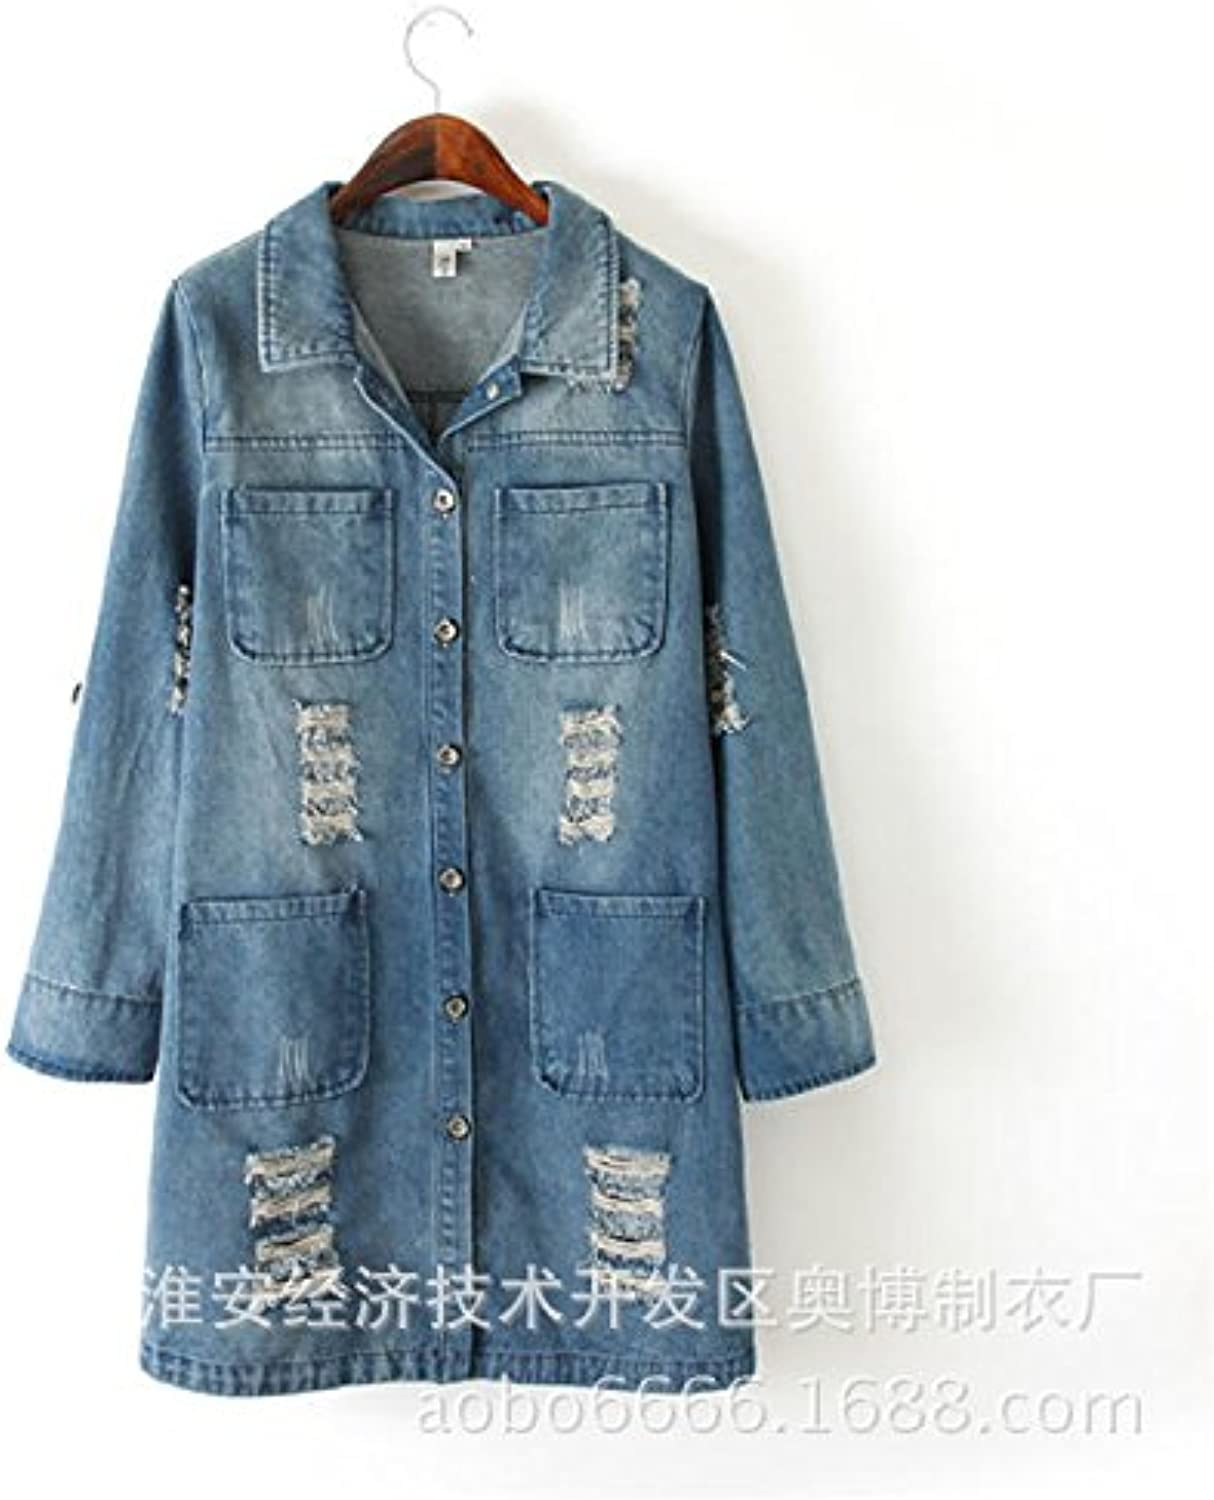 2016 explosions, autumn, long bifold wallets, Womens denim jacket, handmade, worn cotton College wind, denim coats, outerwear, relaxed, casual , picture color , m